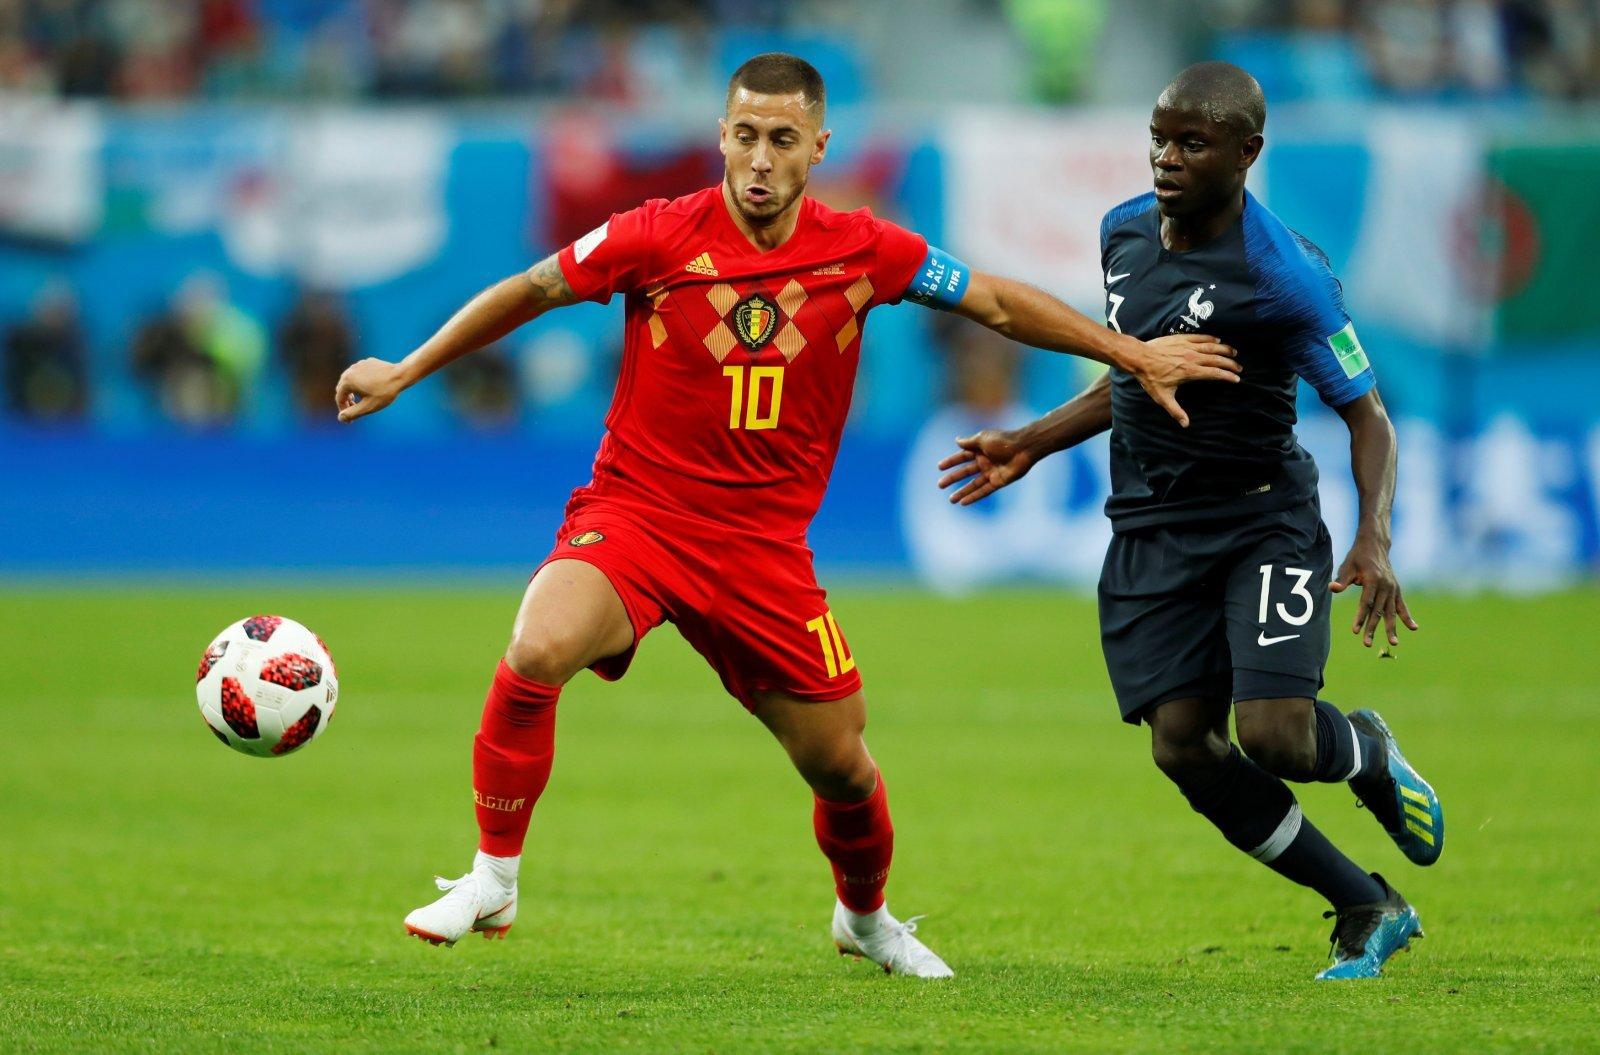 Chelsea fans call for Hazard contract extension following FIFA award nomination